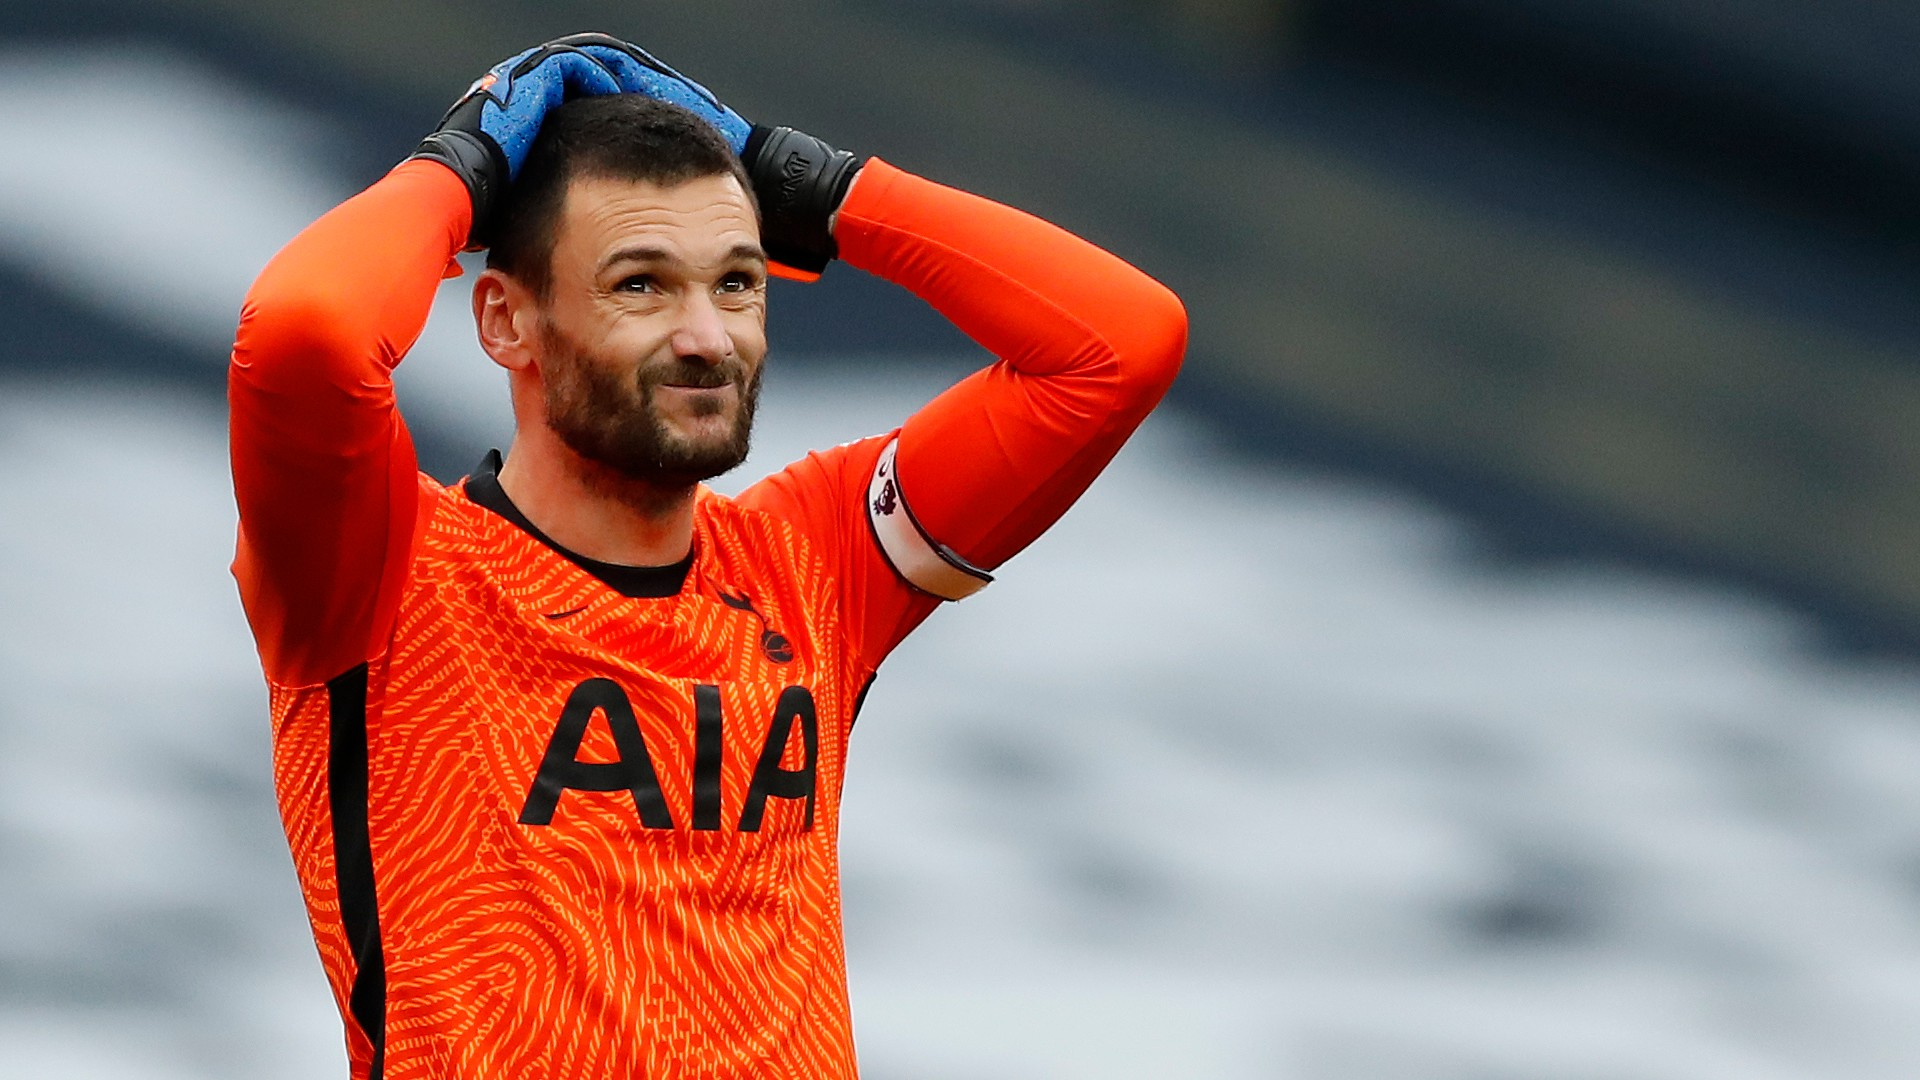 'It's a disgrace' - Lloris says Tottenham's form 'reflects what's going on inside the club' after Europa League exit